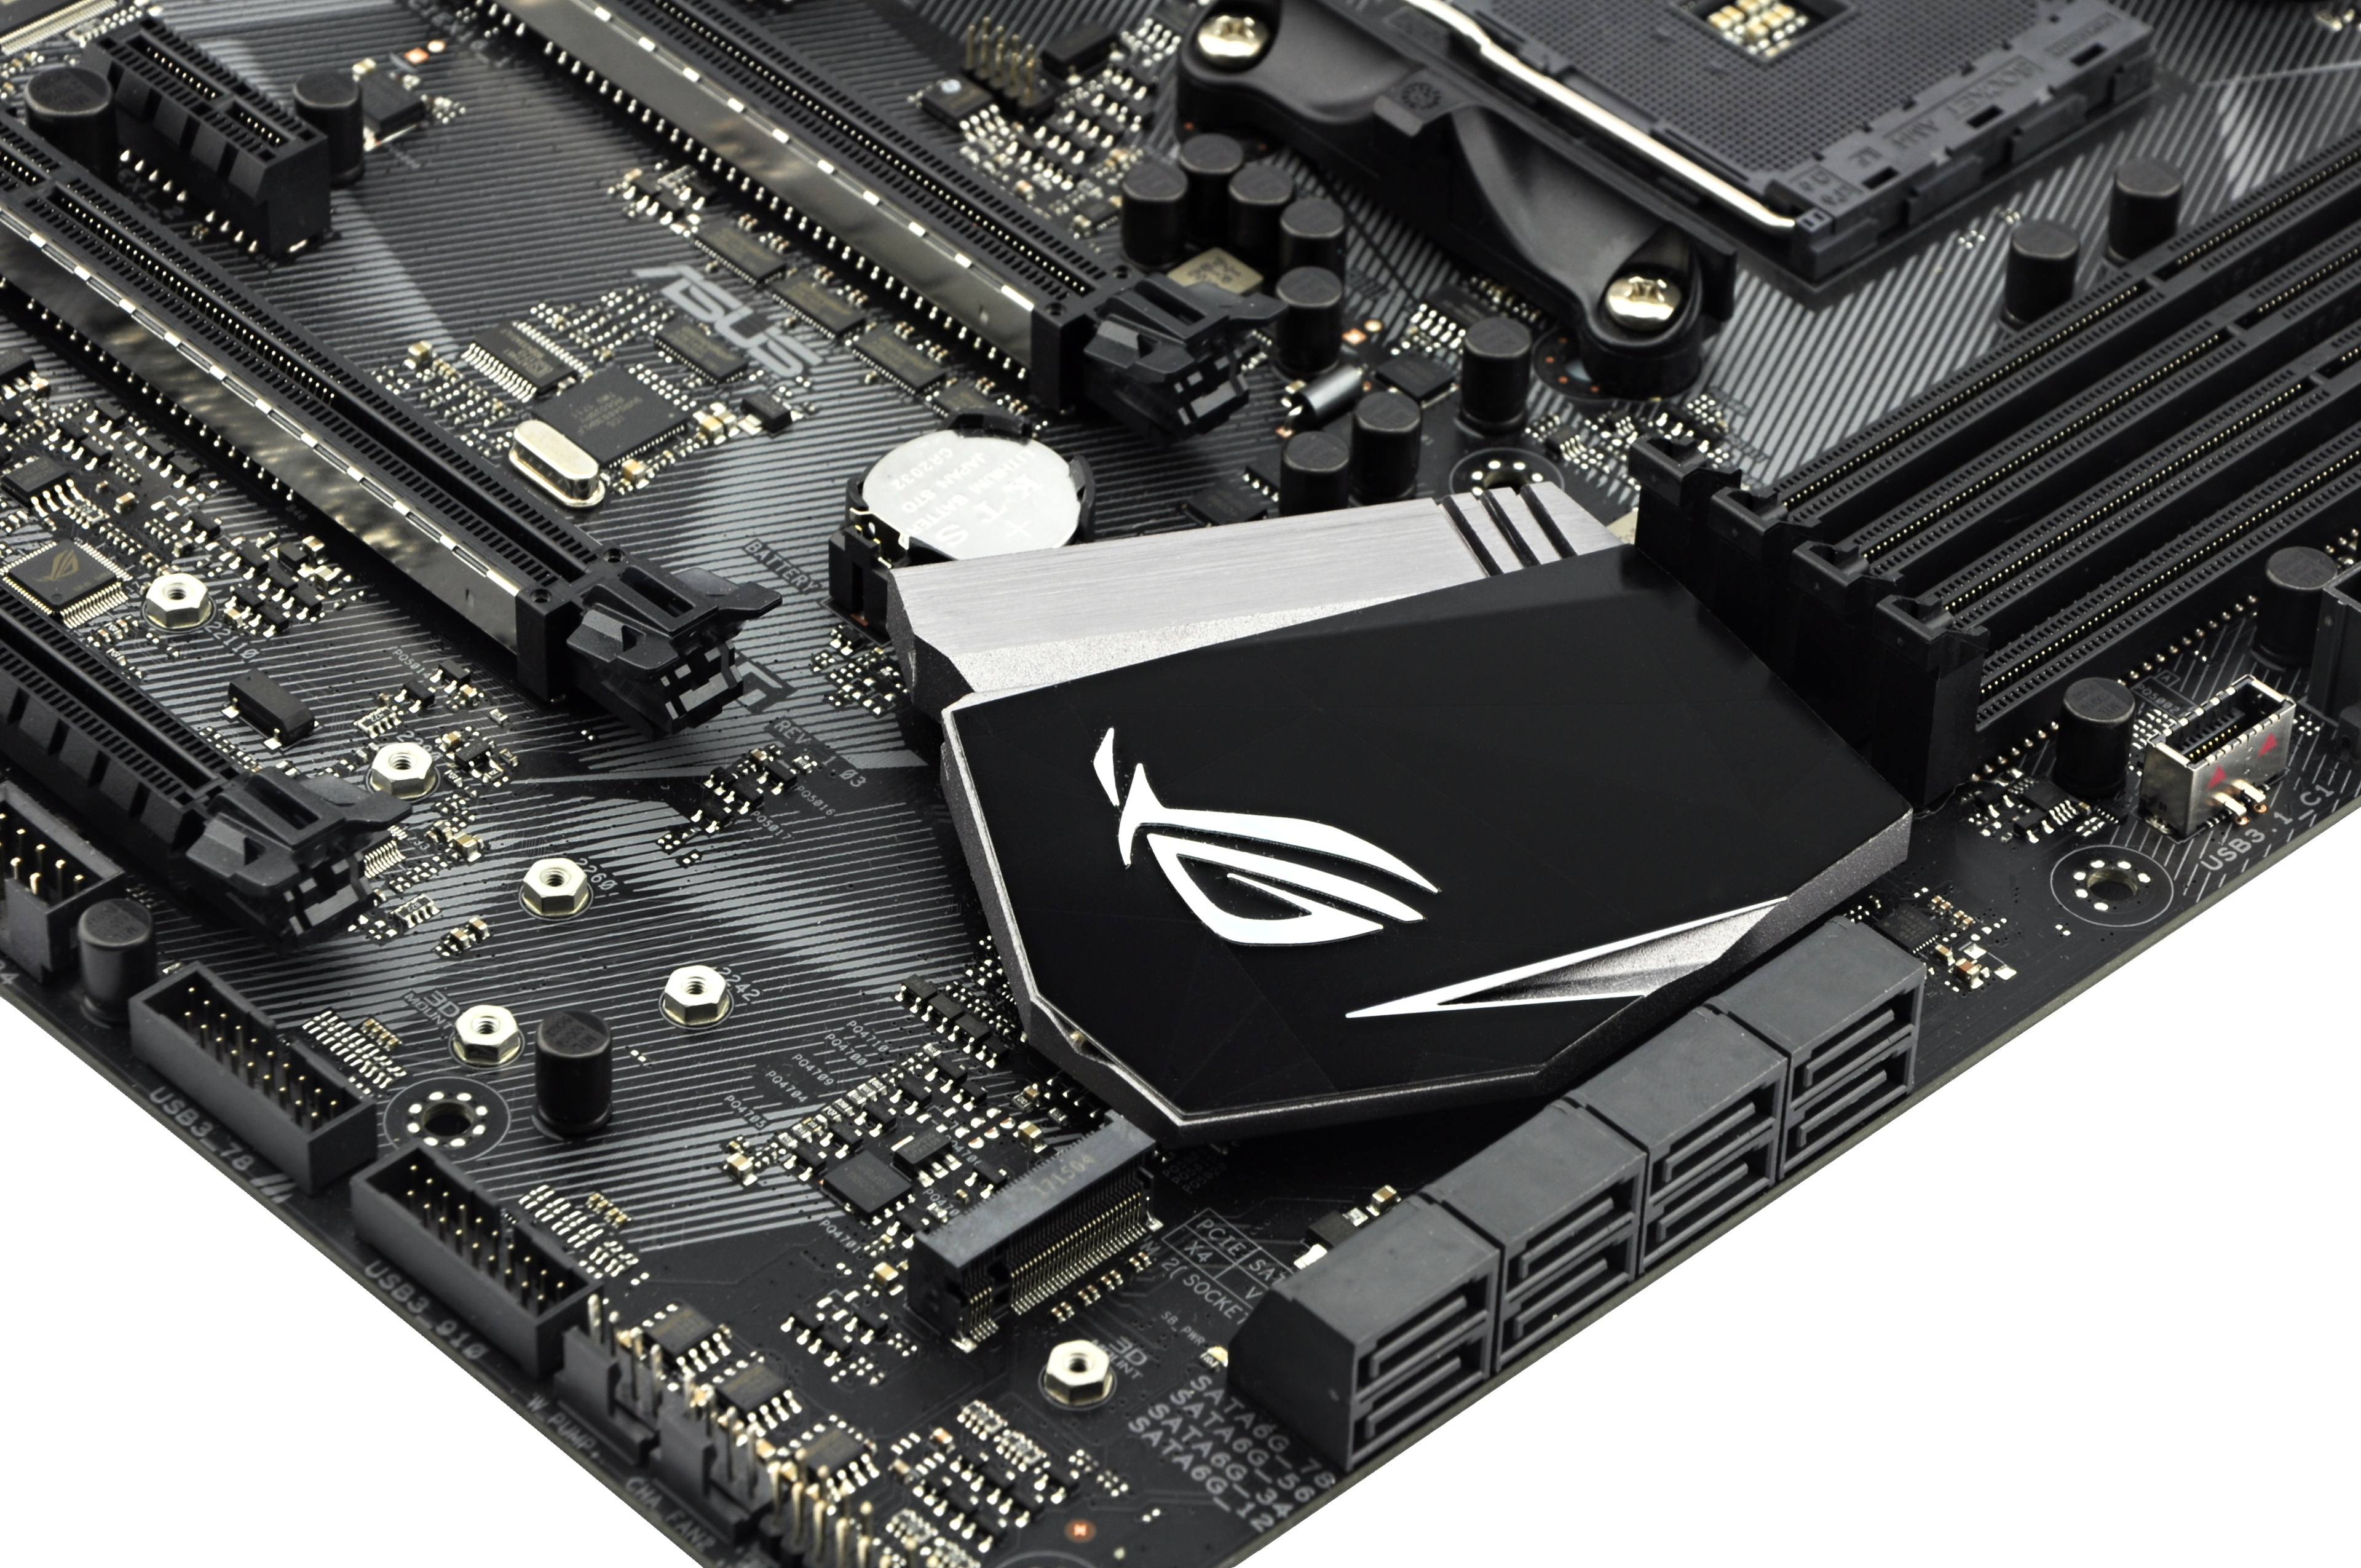 Which X370 For 175 Eur Asus Rog Strix Or Gigabyte Gaming 5 Ga Ax370 There Are Seven 4 Pin Connectors After The Z270e It Seems That Has Decided Is Better To Have More With Standard Specifications